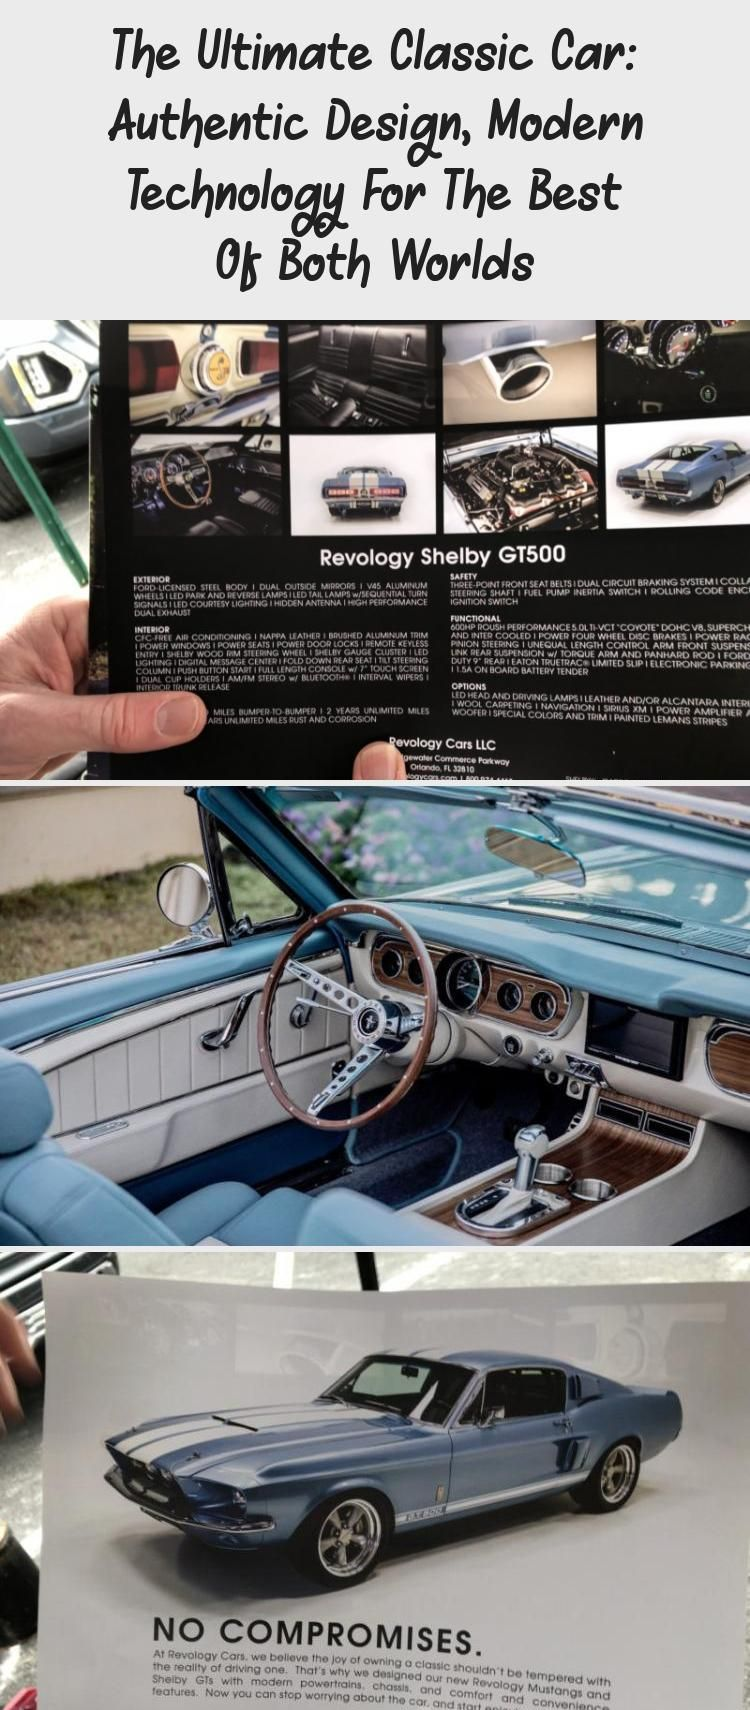 The Ultimate Classic Car Authentic Design Modern Technology For